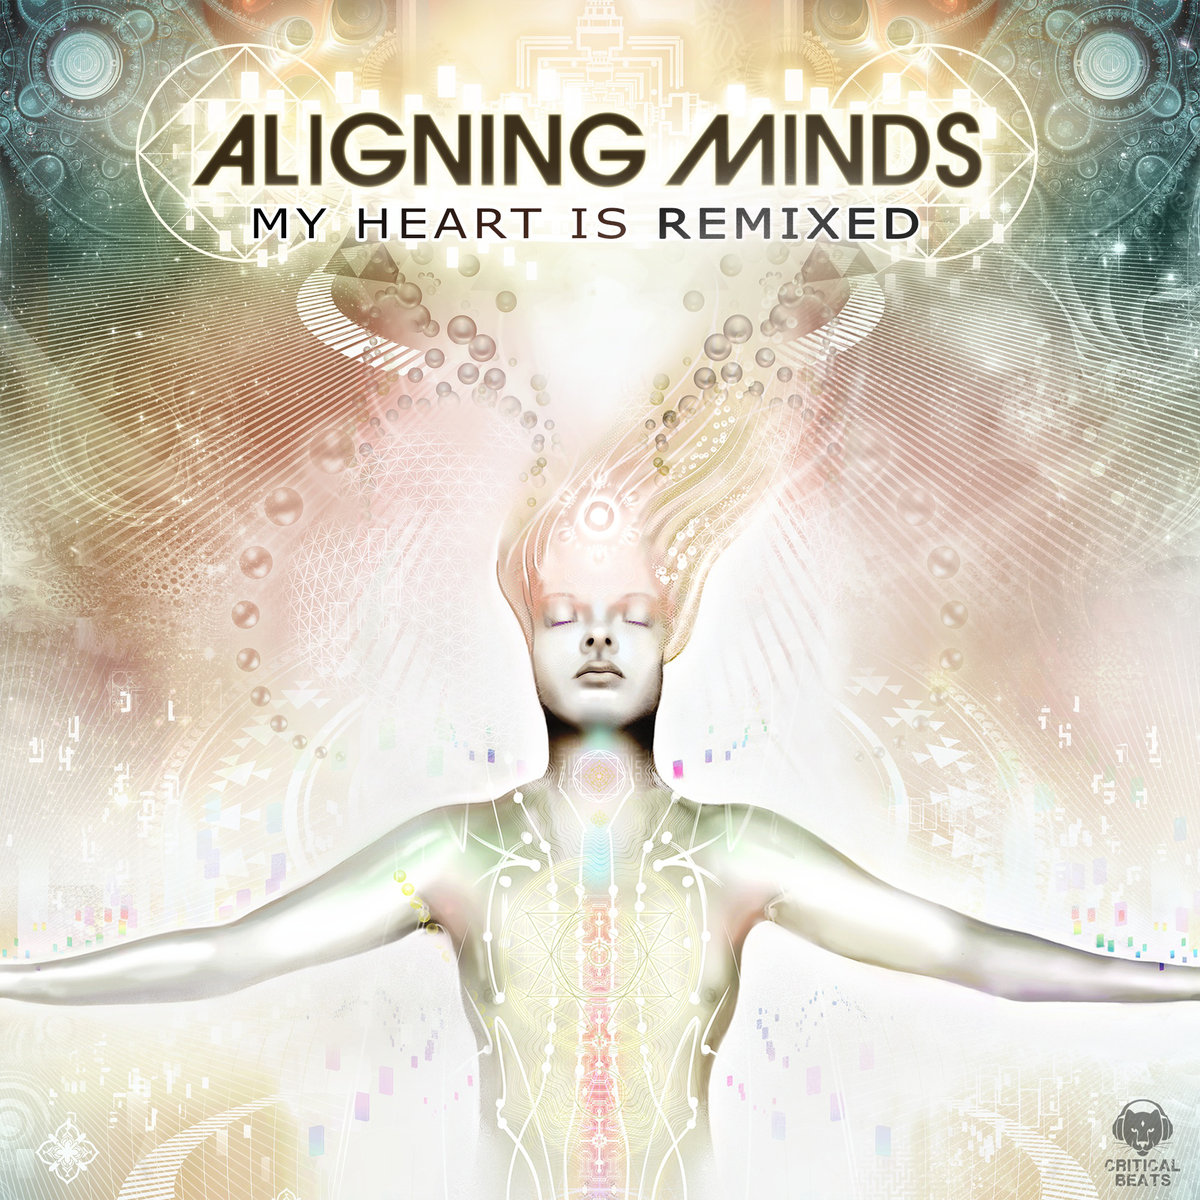 Aligning Minds - In The Wake of Forever (Androcell Remix) @ 'My Heart Is Remixed' album (asheville, baltimore)